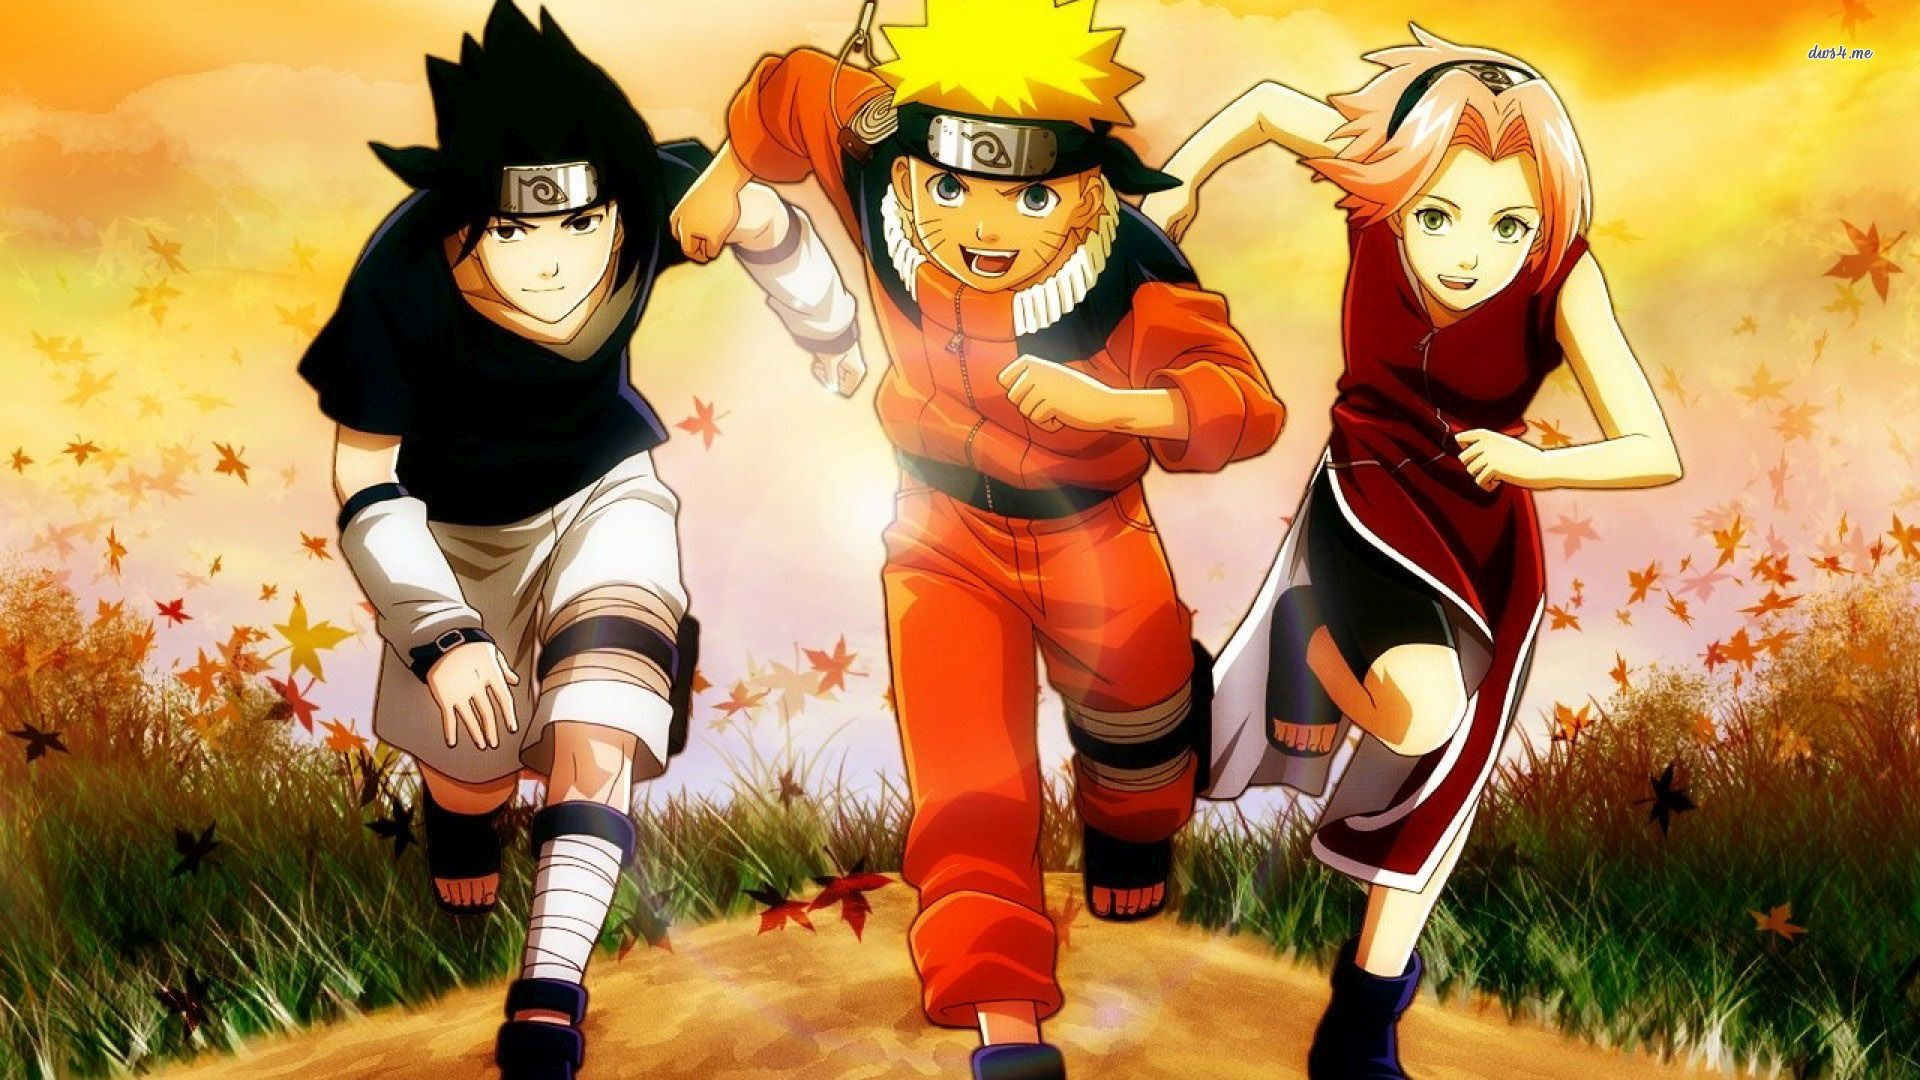 naruto wallpaper naruto wallpaper